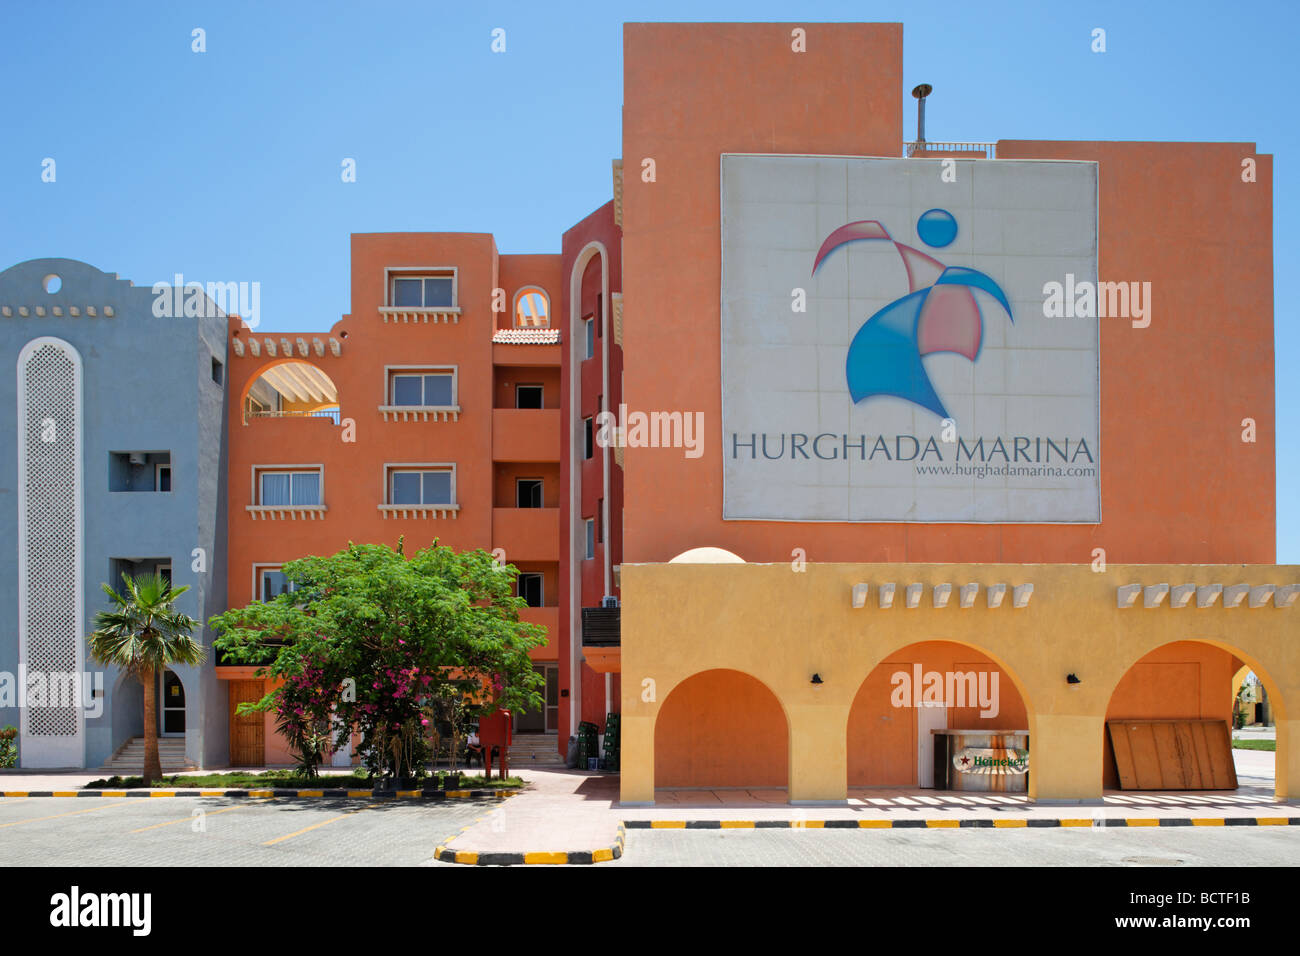 Houses with logo of the marina, Hurghada, Egypt, Red Sea, Africa Stock Photo